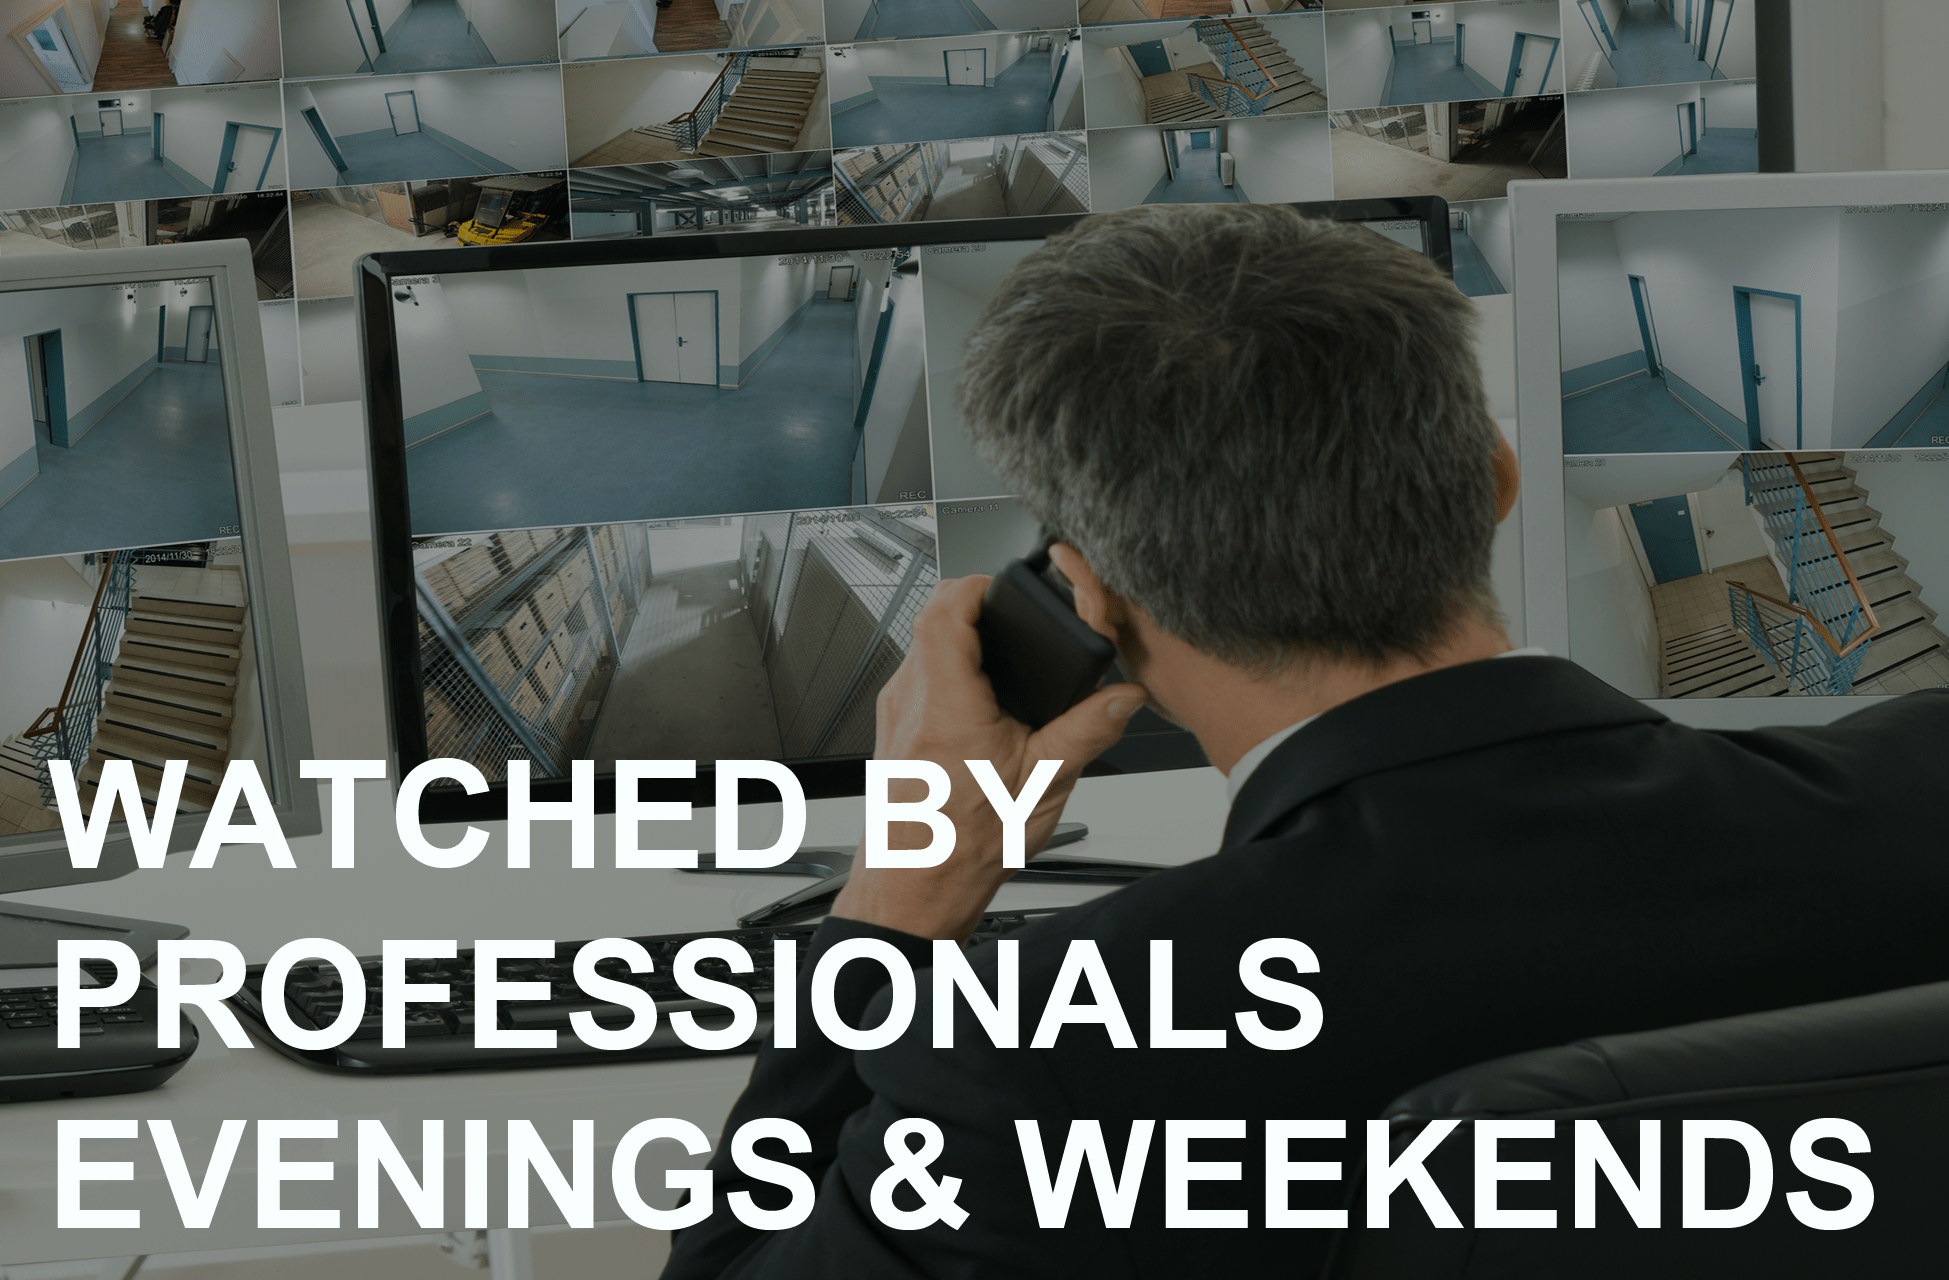 Watched by Professionals 24/7